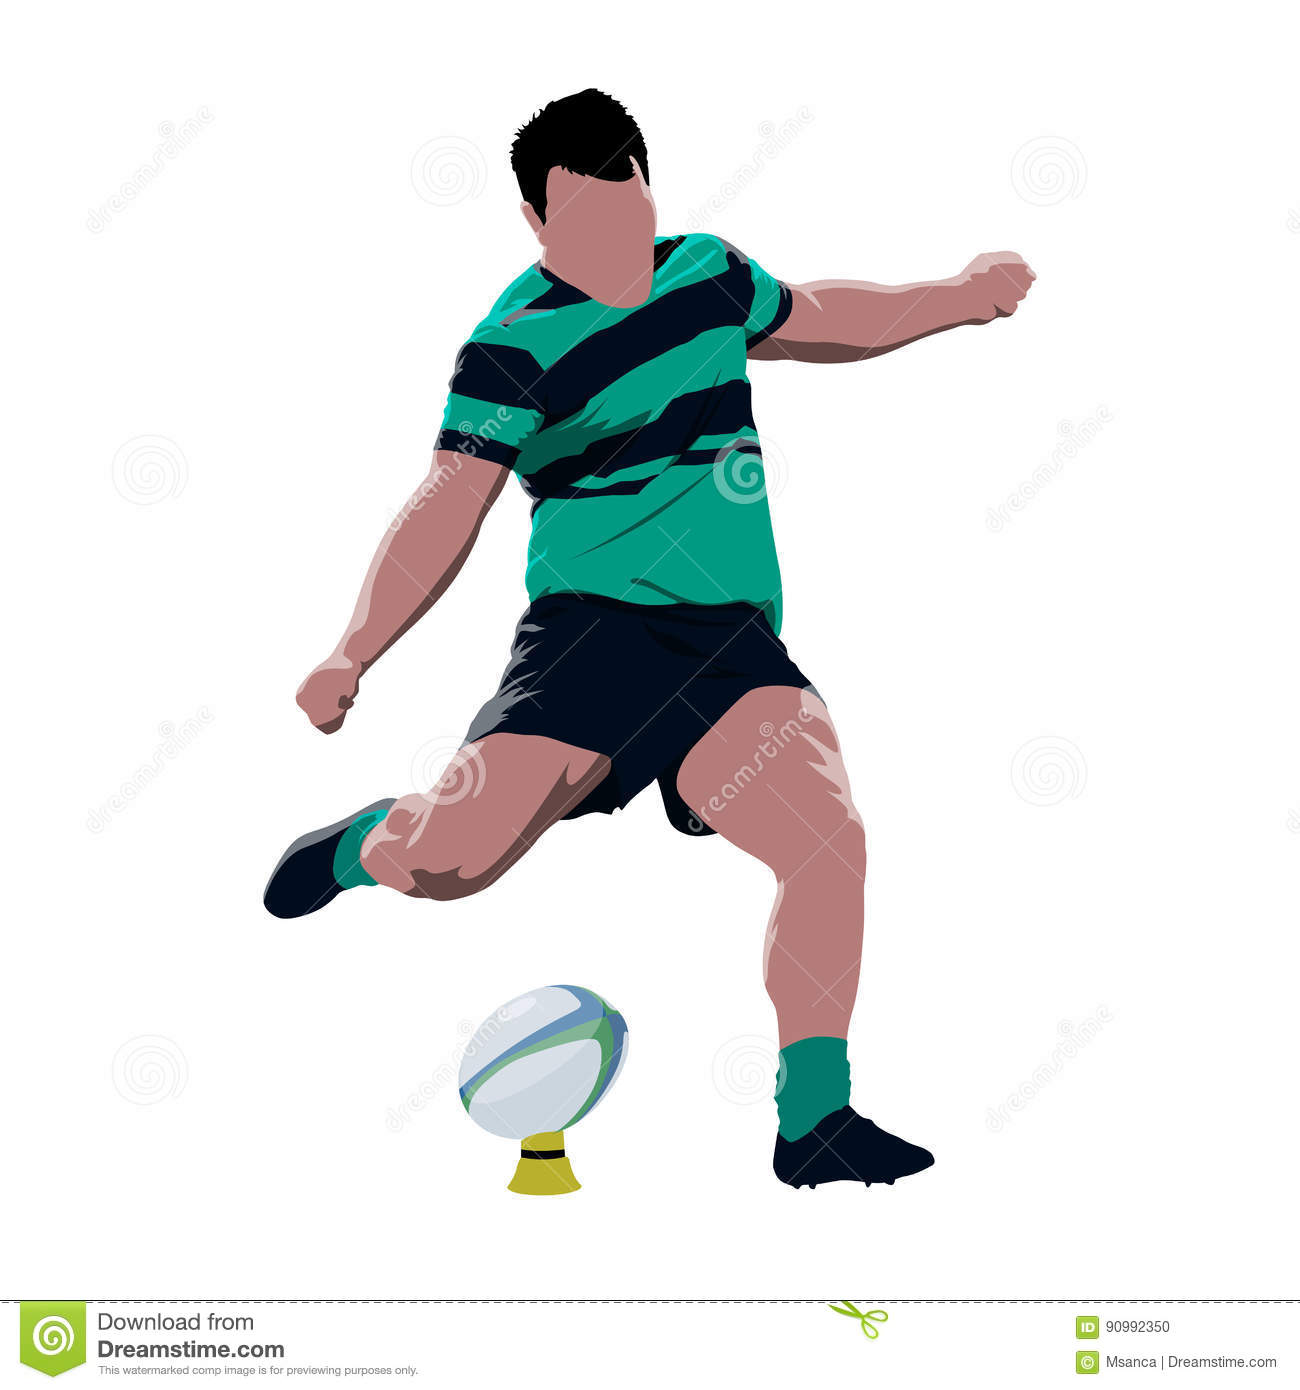 Green Rugby Player: Rugby Player Kicking Ball Stock Vector. Image Of Green